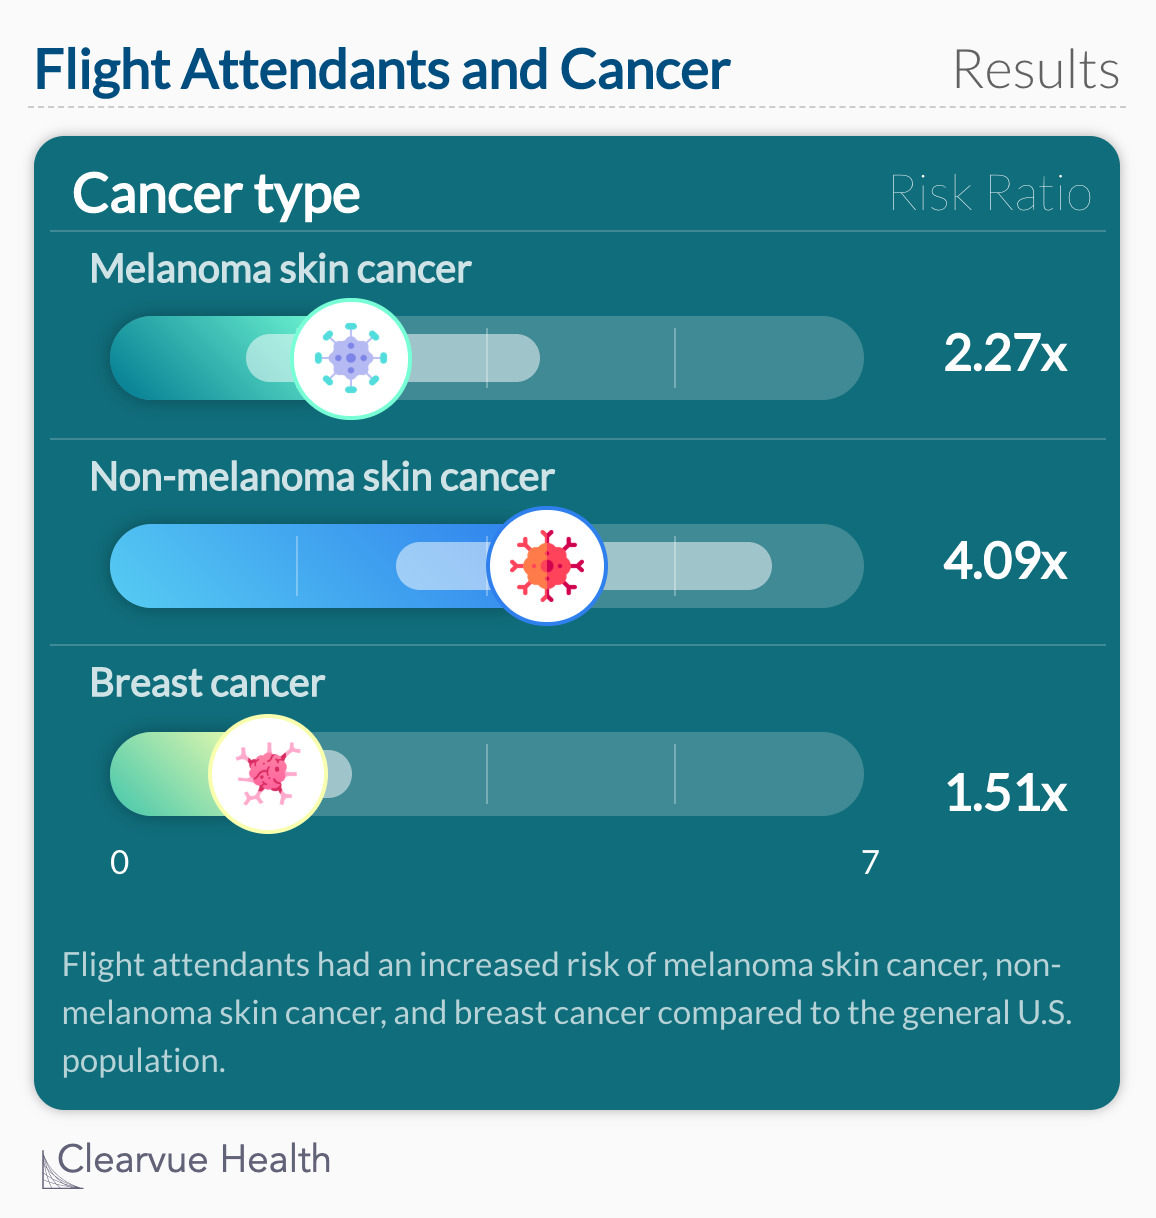 Flight Attendants and Cancer: Results